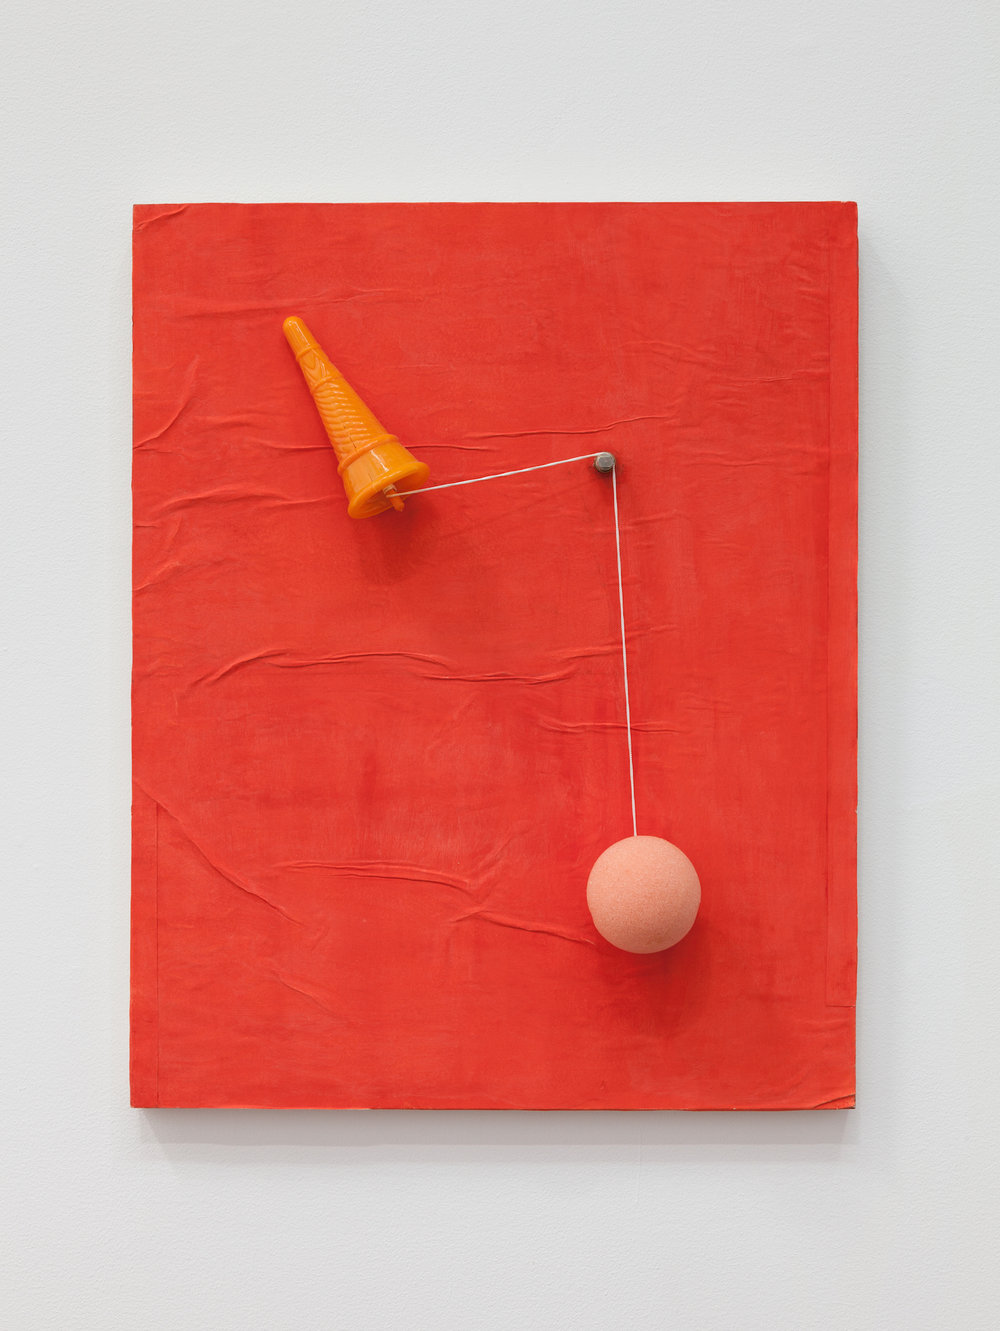 Deborah Hede,  Ice Cream Cone , 2014 - 2018, paper, watercolor, found object on panel, 20 × 16 × ¾ in